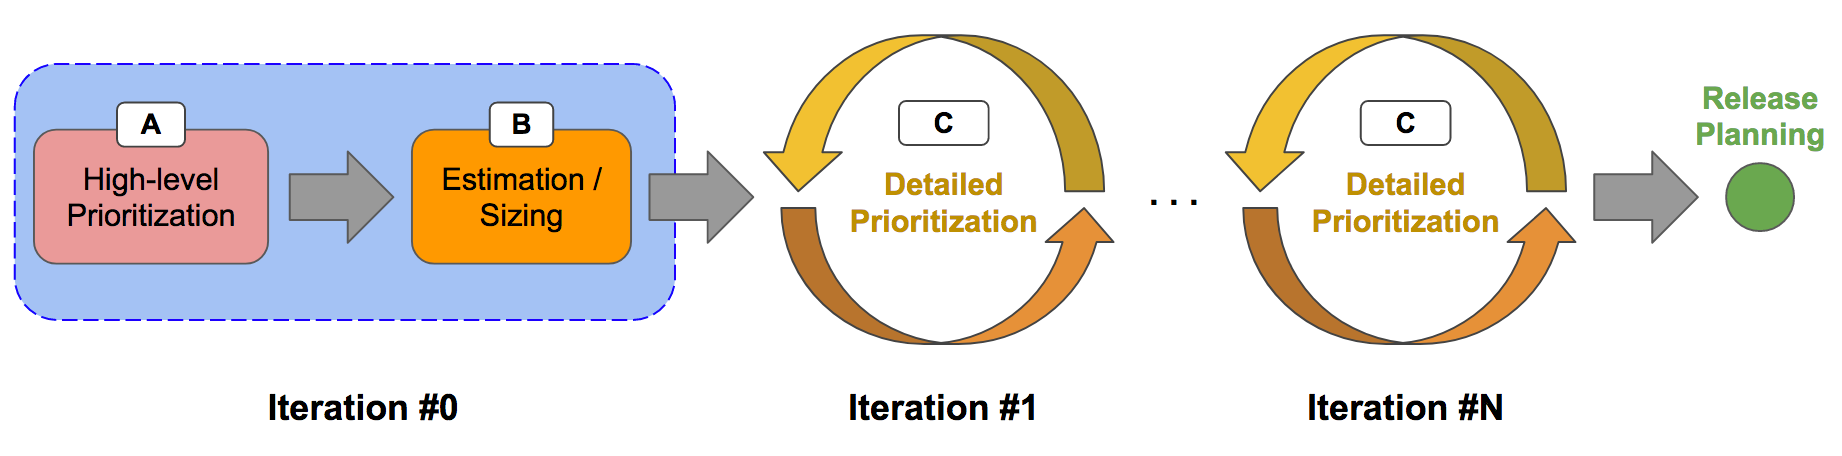 prioritization and estimation phases